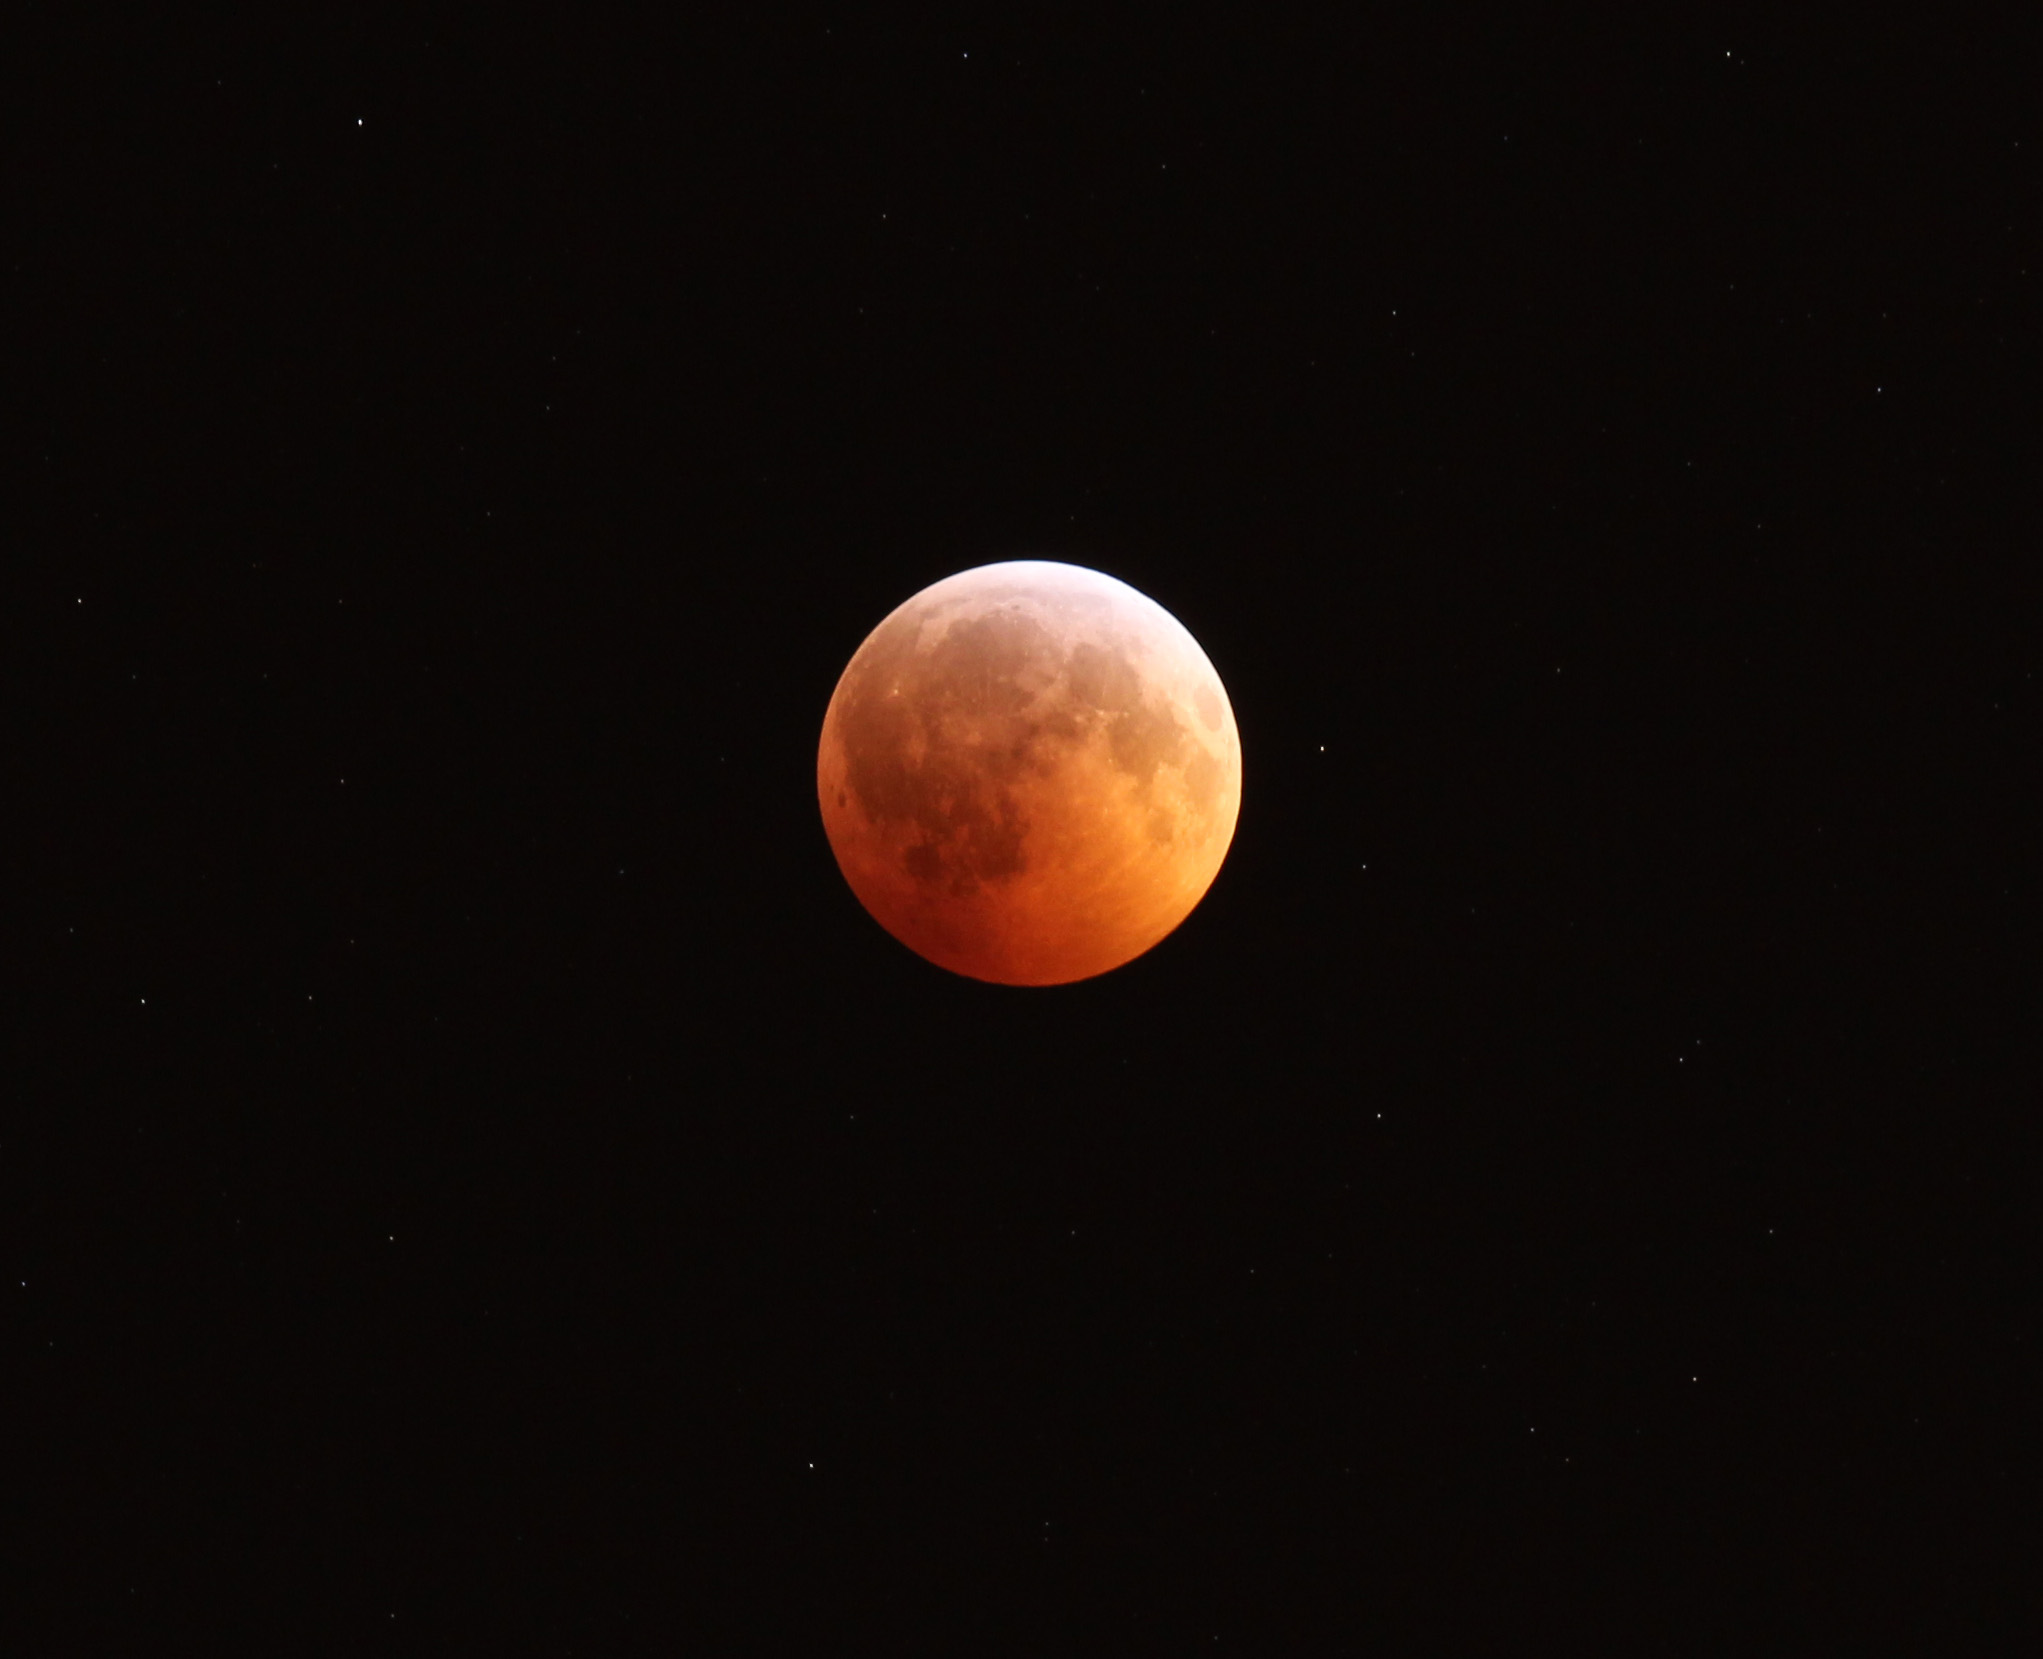 The Moon during total eclipse in 2010. Photo by Randy Attwood